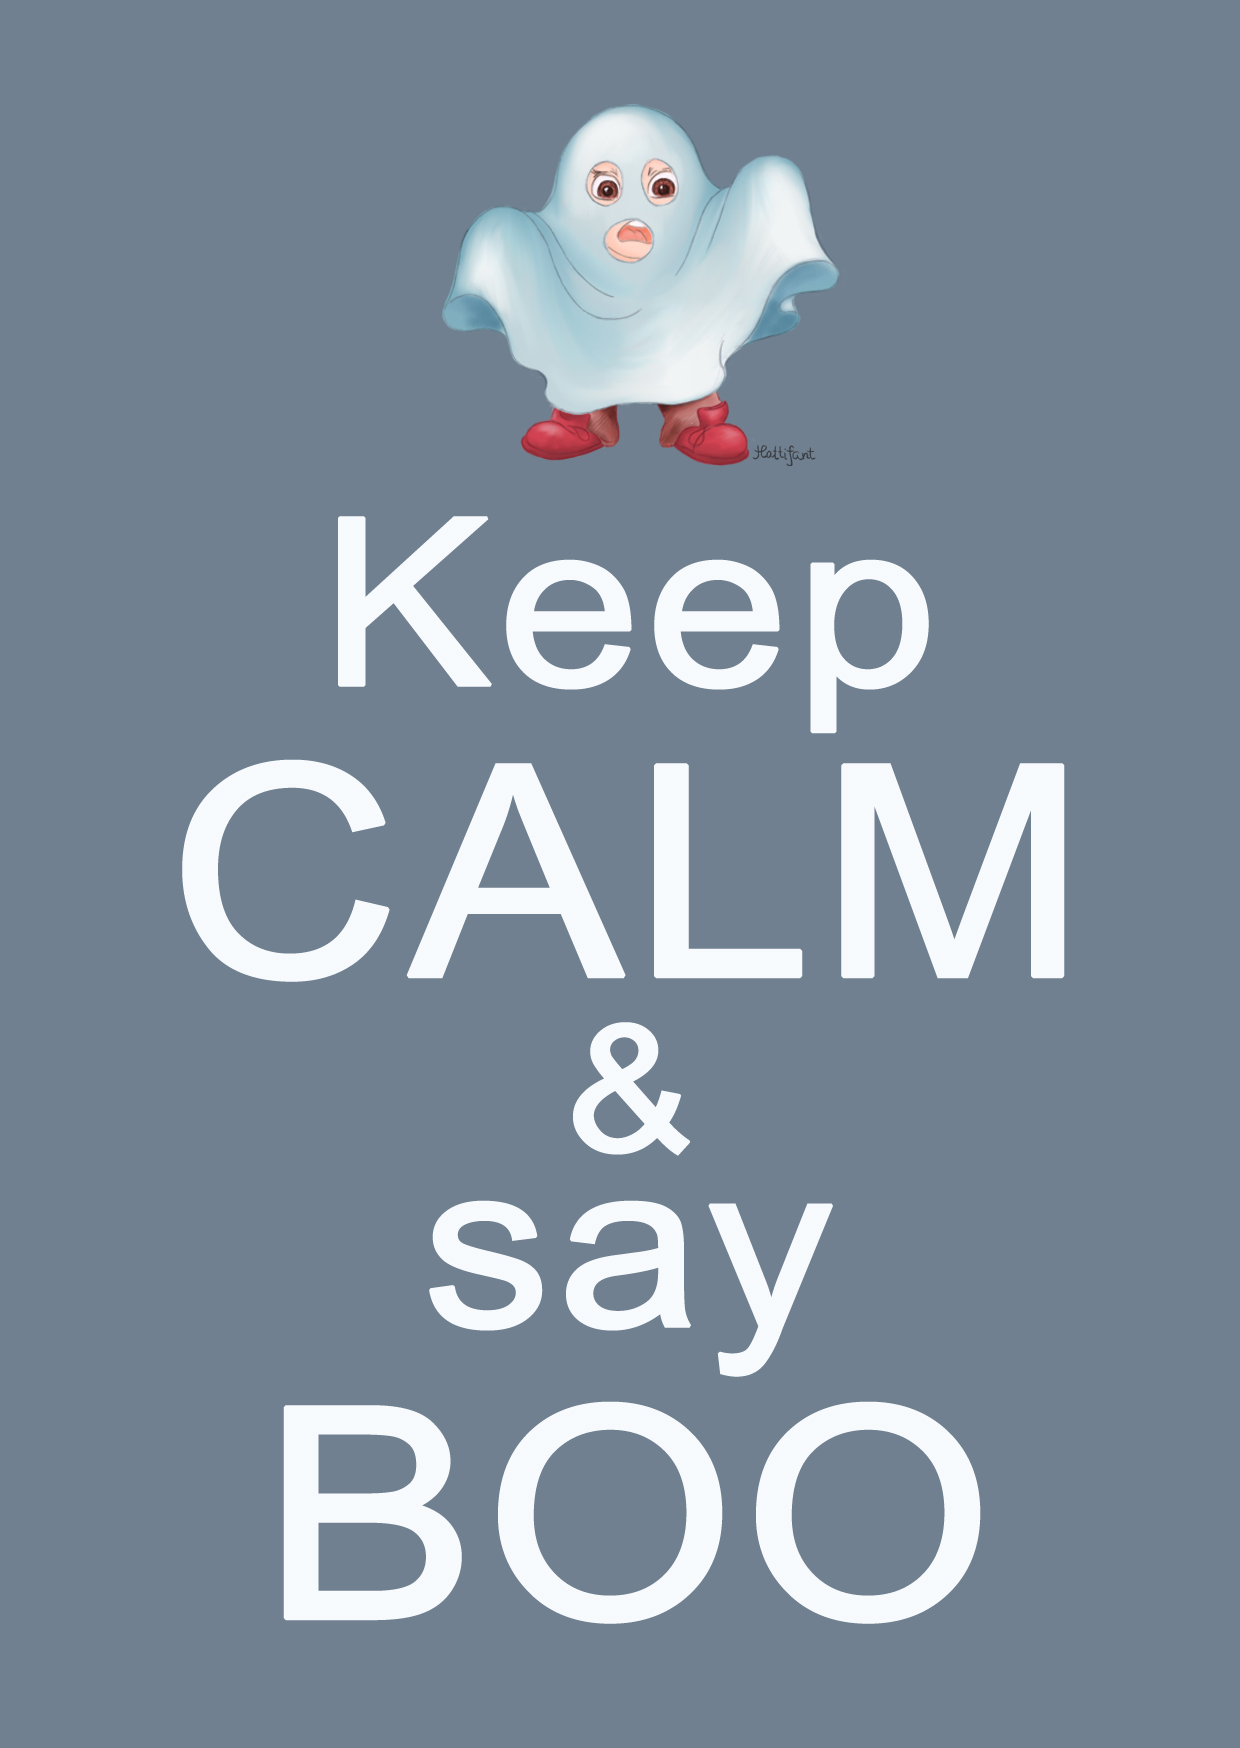 Halloween, stay calm, say boo, boo, ghost, illustration